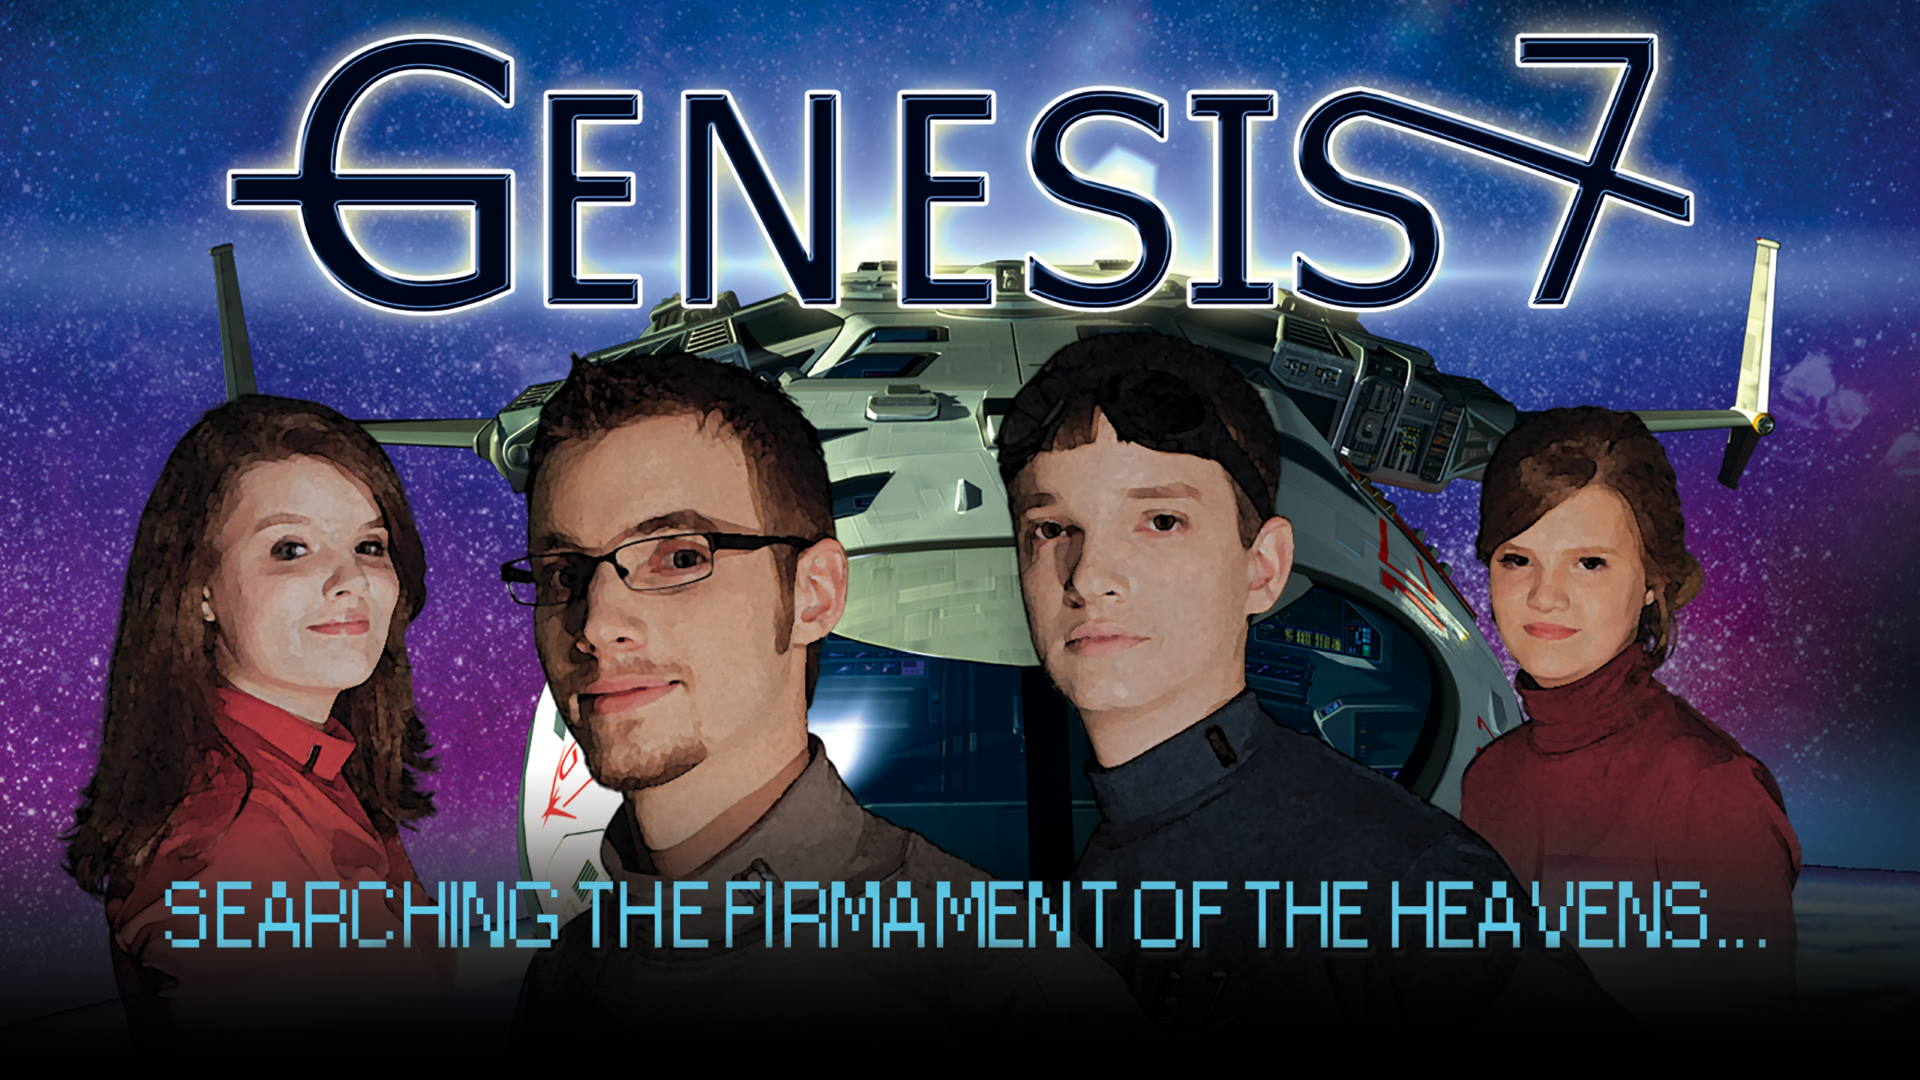 Genesis 7 Ep 9: The Icy World of Uranus